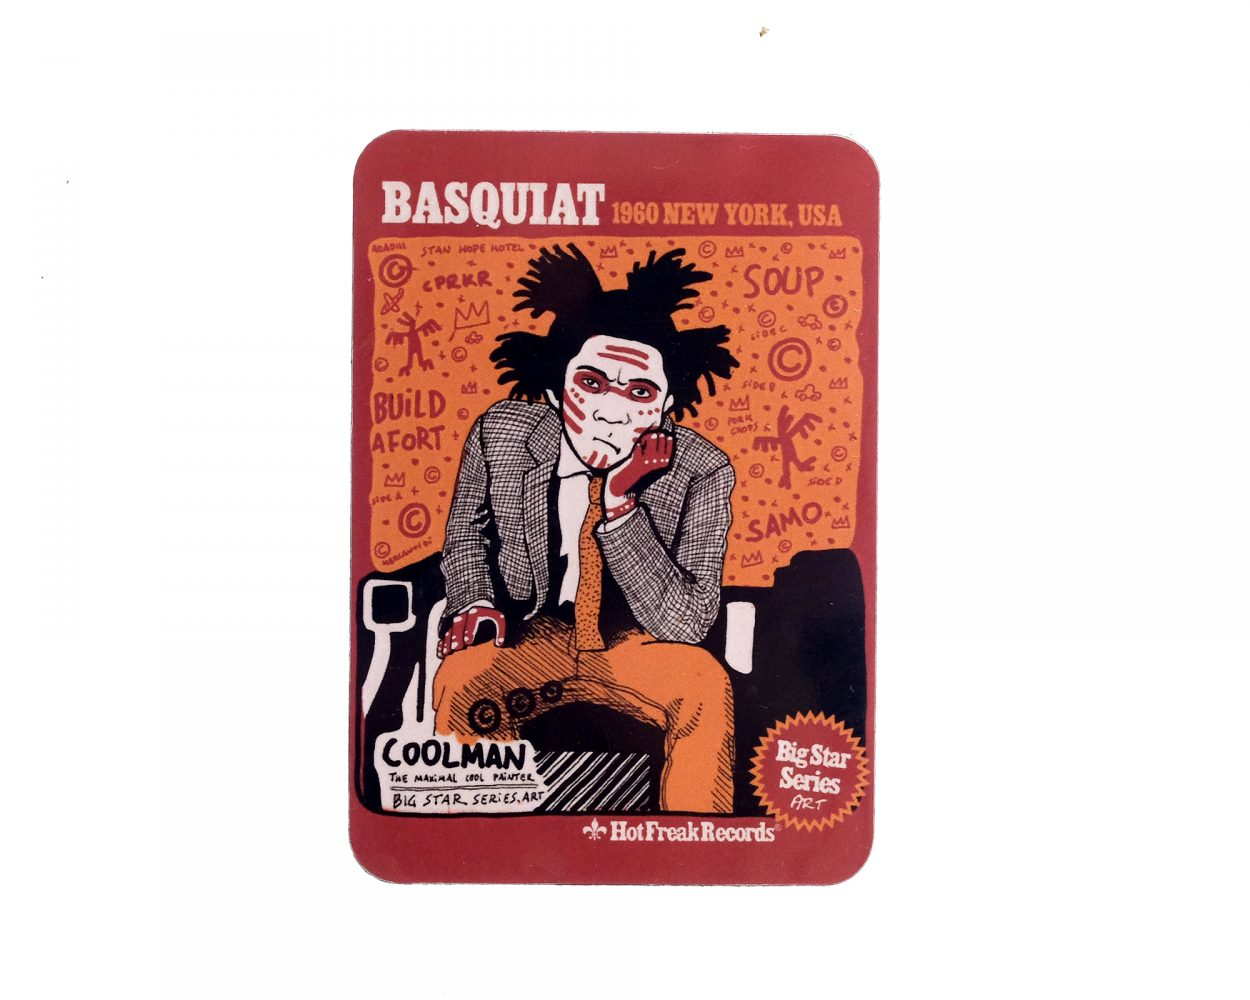 Fridge Magnet with a drawing portrait of the artist Jean Michel Basquiat. Modern Art Illustration. Grafitti